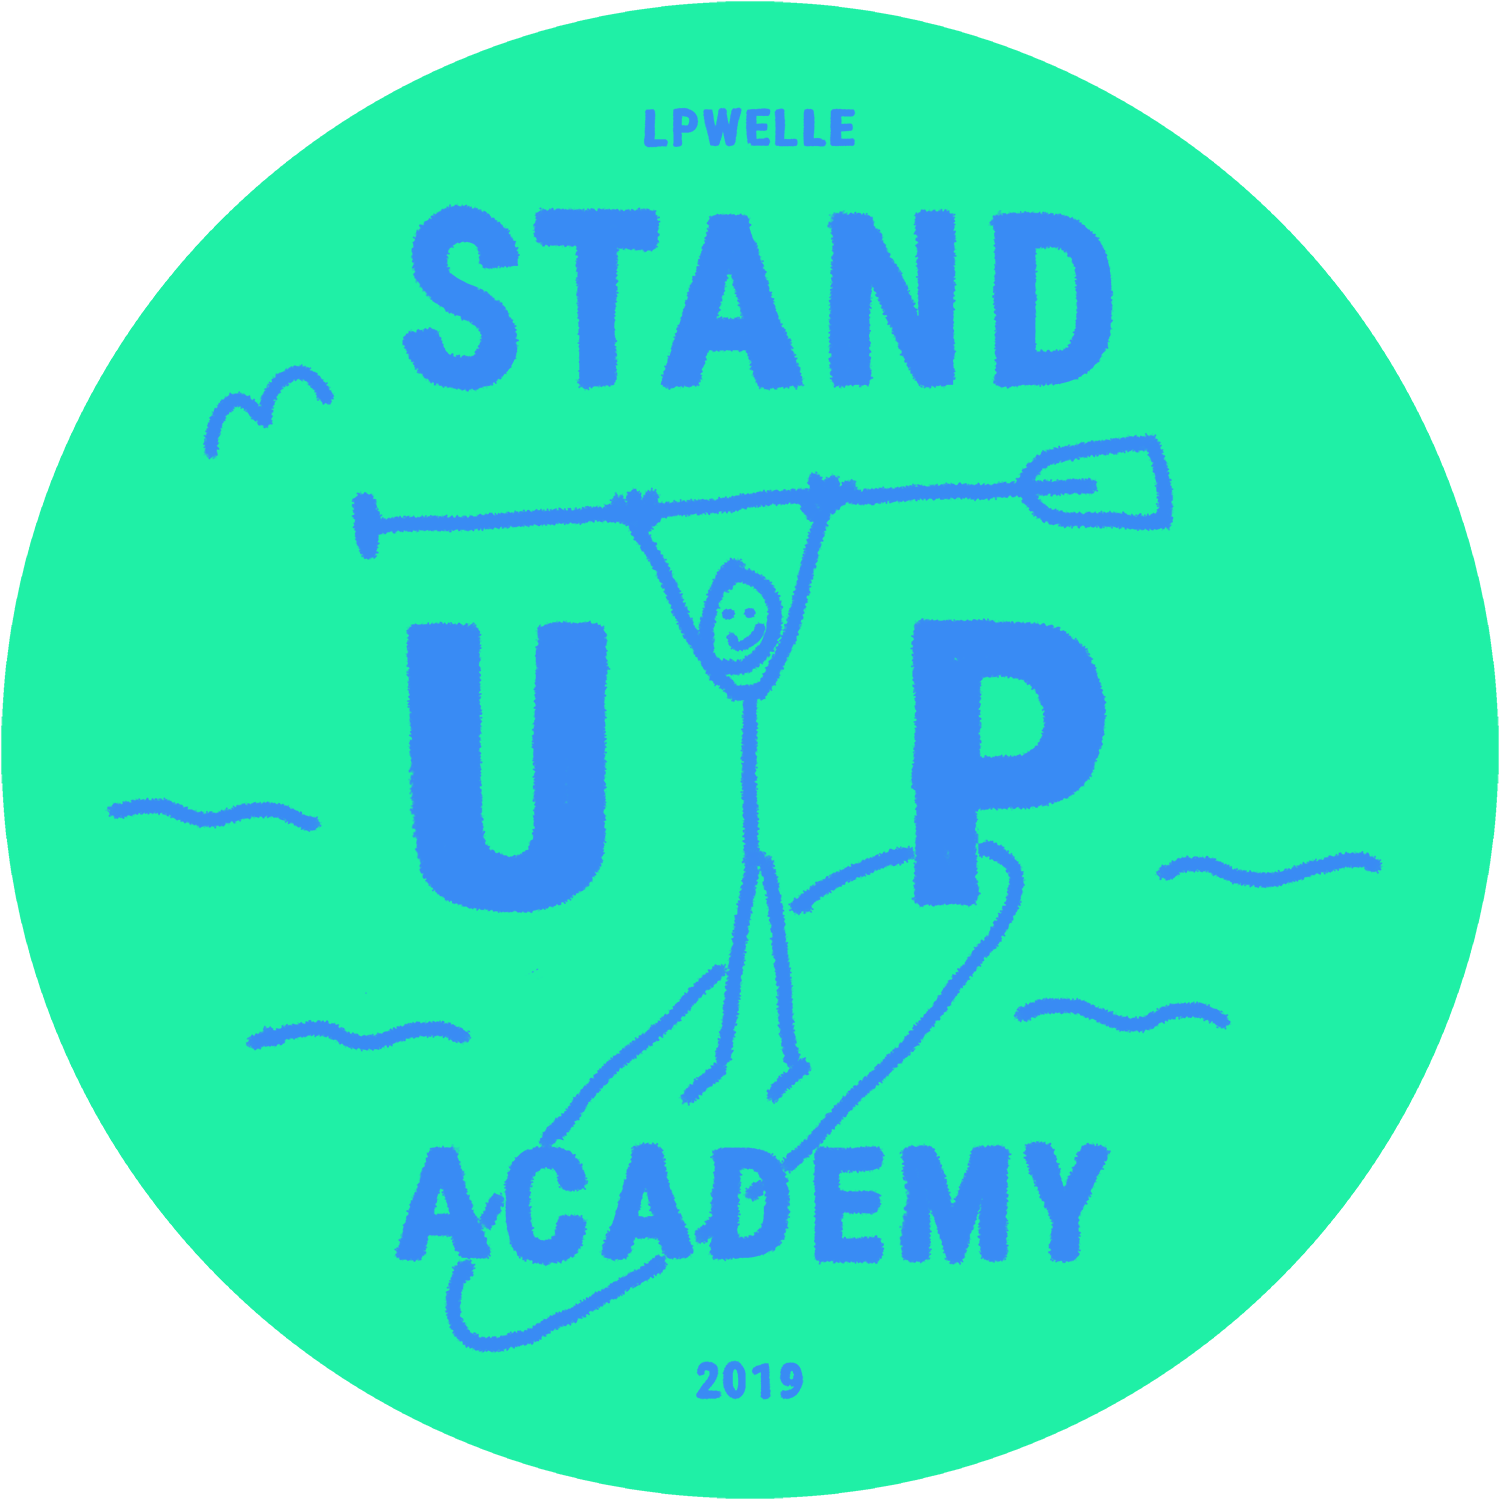 stand up academy logo green png